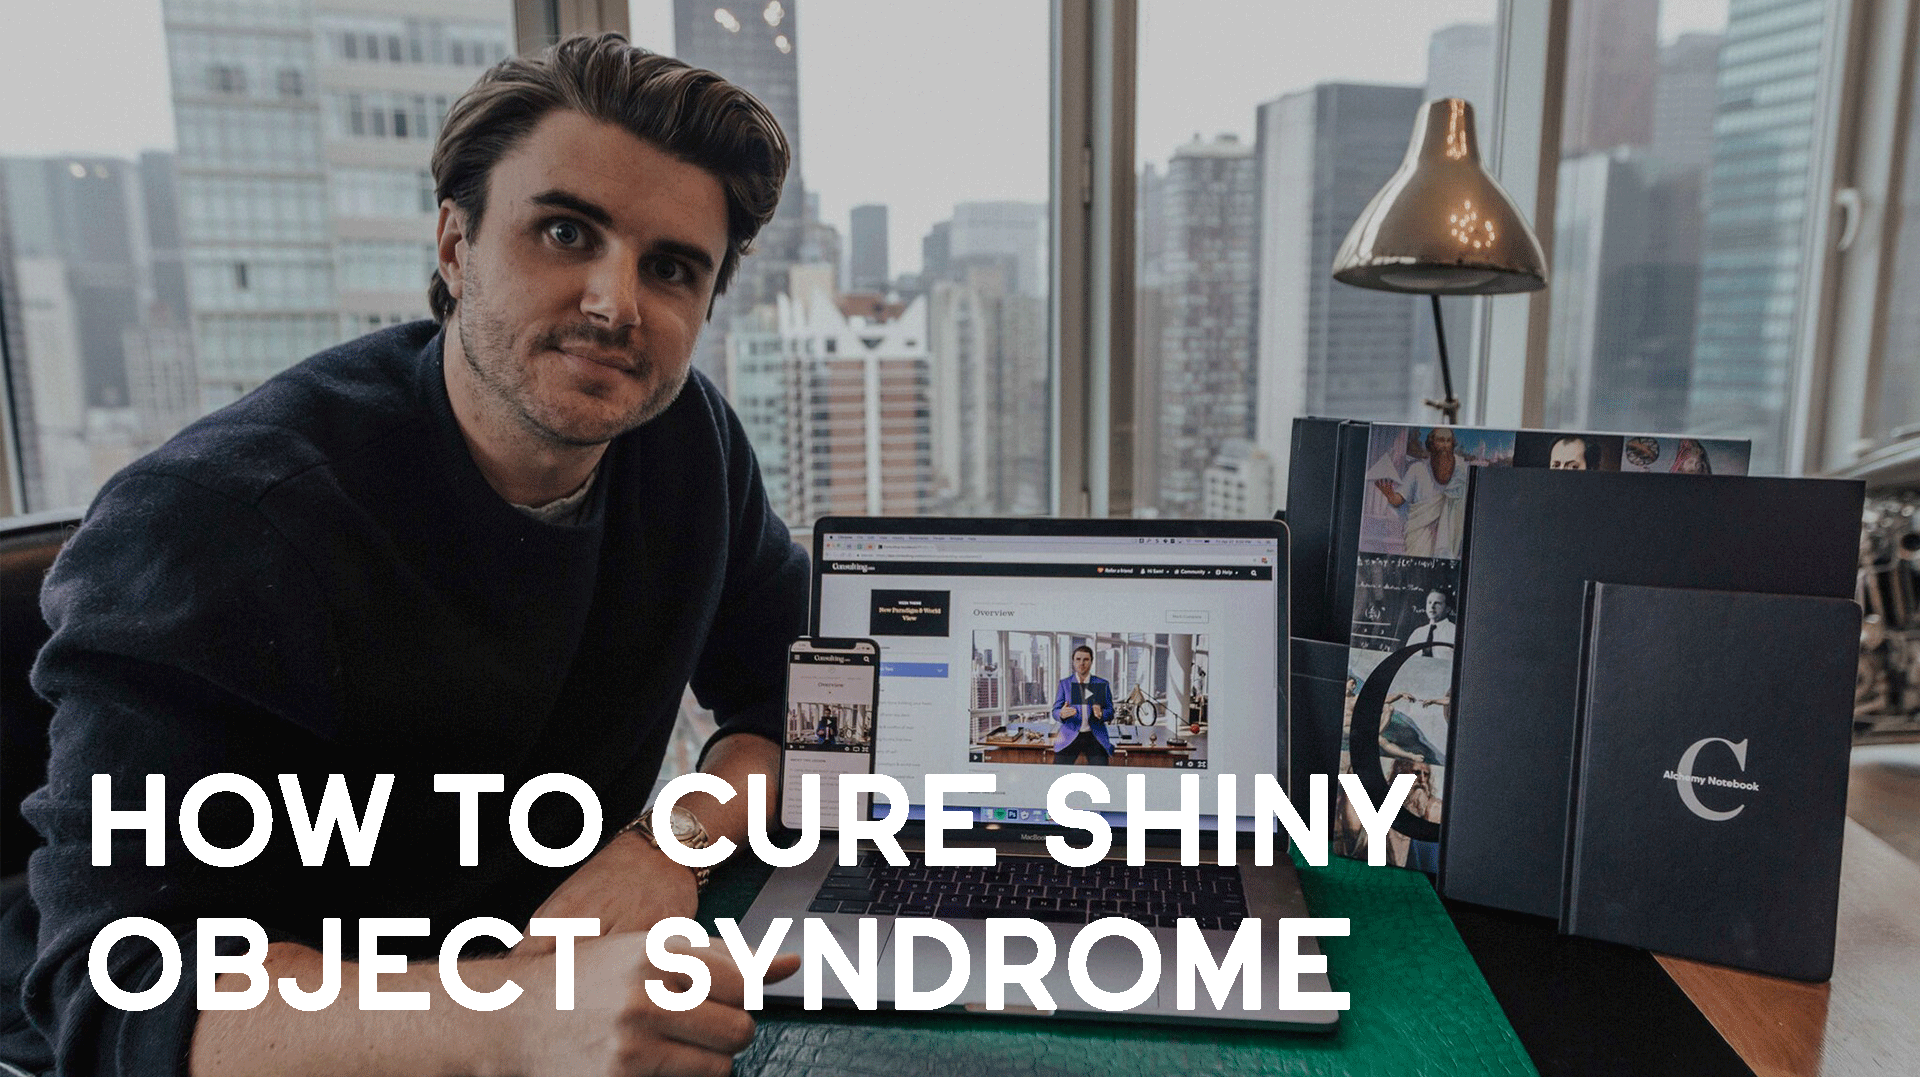 Shiny Object Syndrome: Why The Grass Isn't Greener On The Other Side